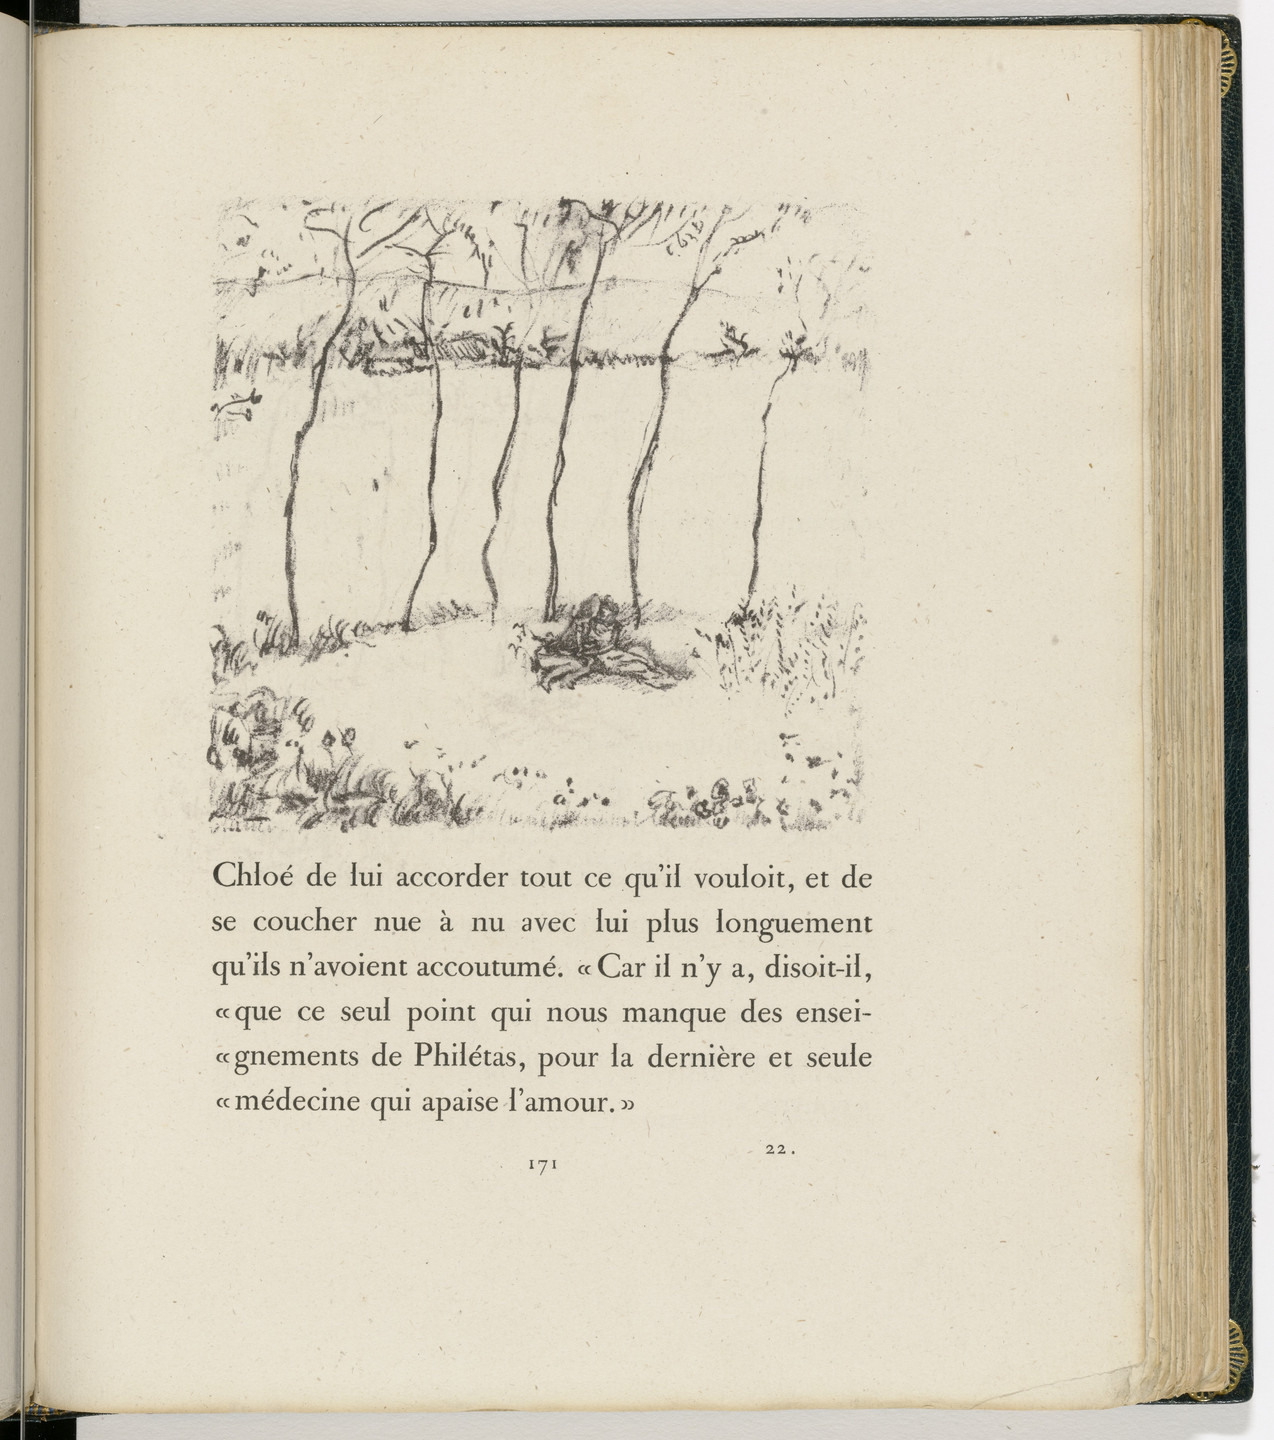 Pierre Bonnard. In-text plate (page 171) from Daphnis et Chloé. 1902